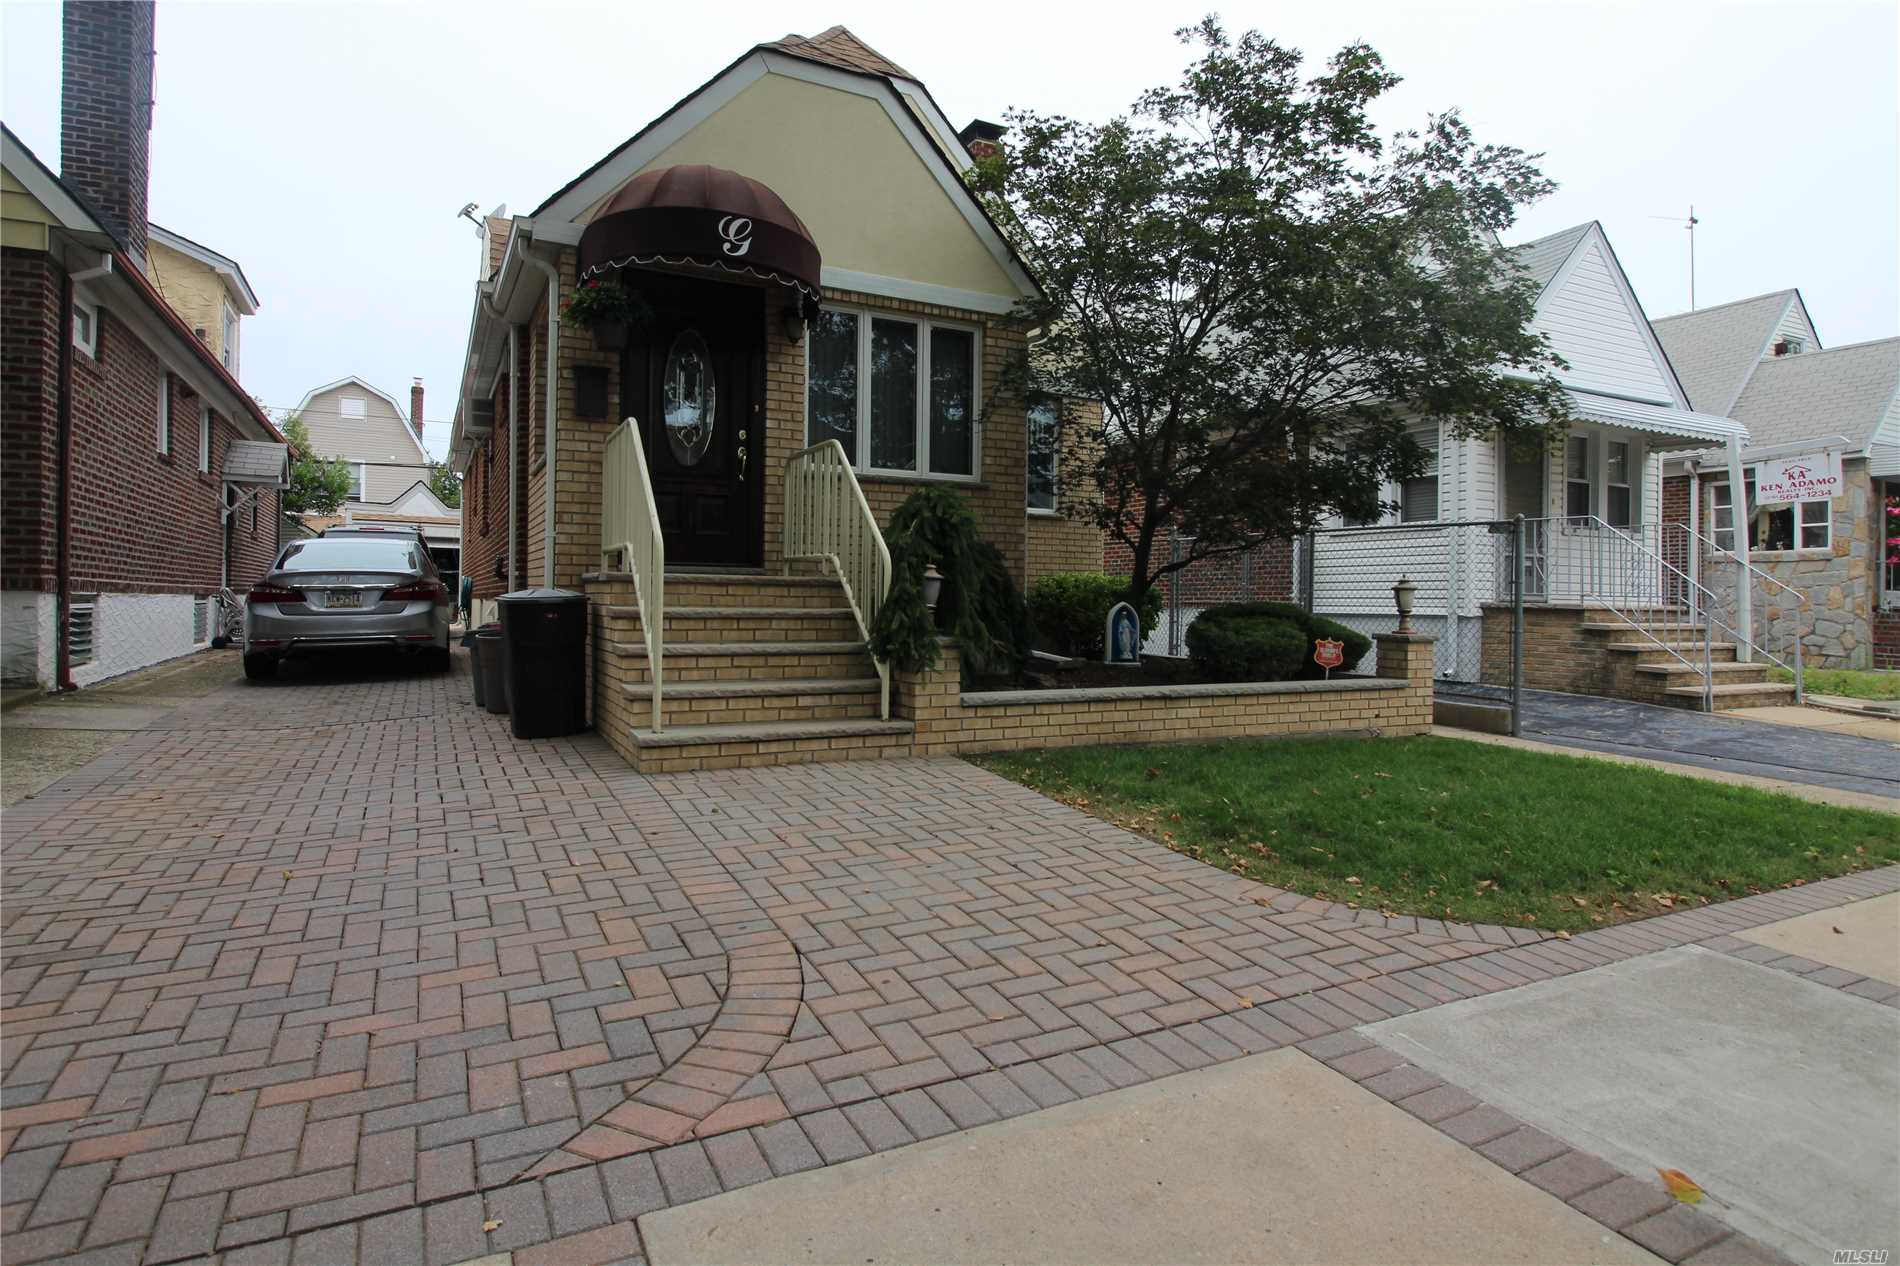 Gas Cooking!!! 3 Bedroom Brick Cape W/ Full Finished Basement With Bonuses. Separate Entrance, Room For Extended Family. Awesome Tree Lined Block In A Booming Area. Hurry, This Will Not Last.